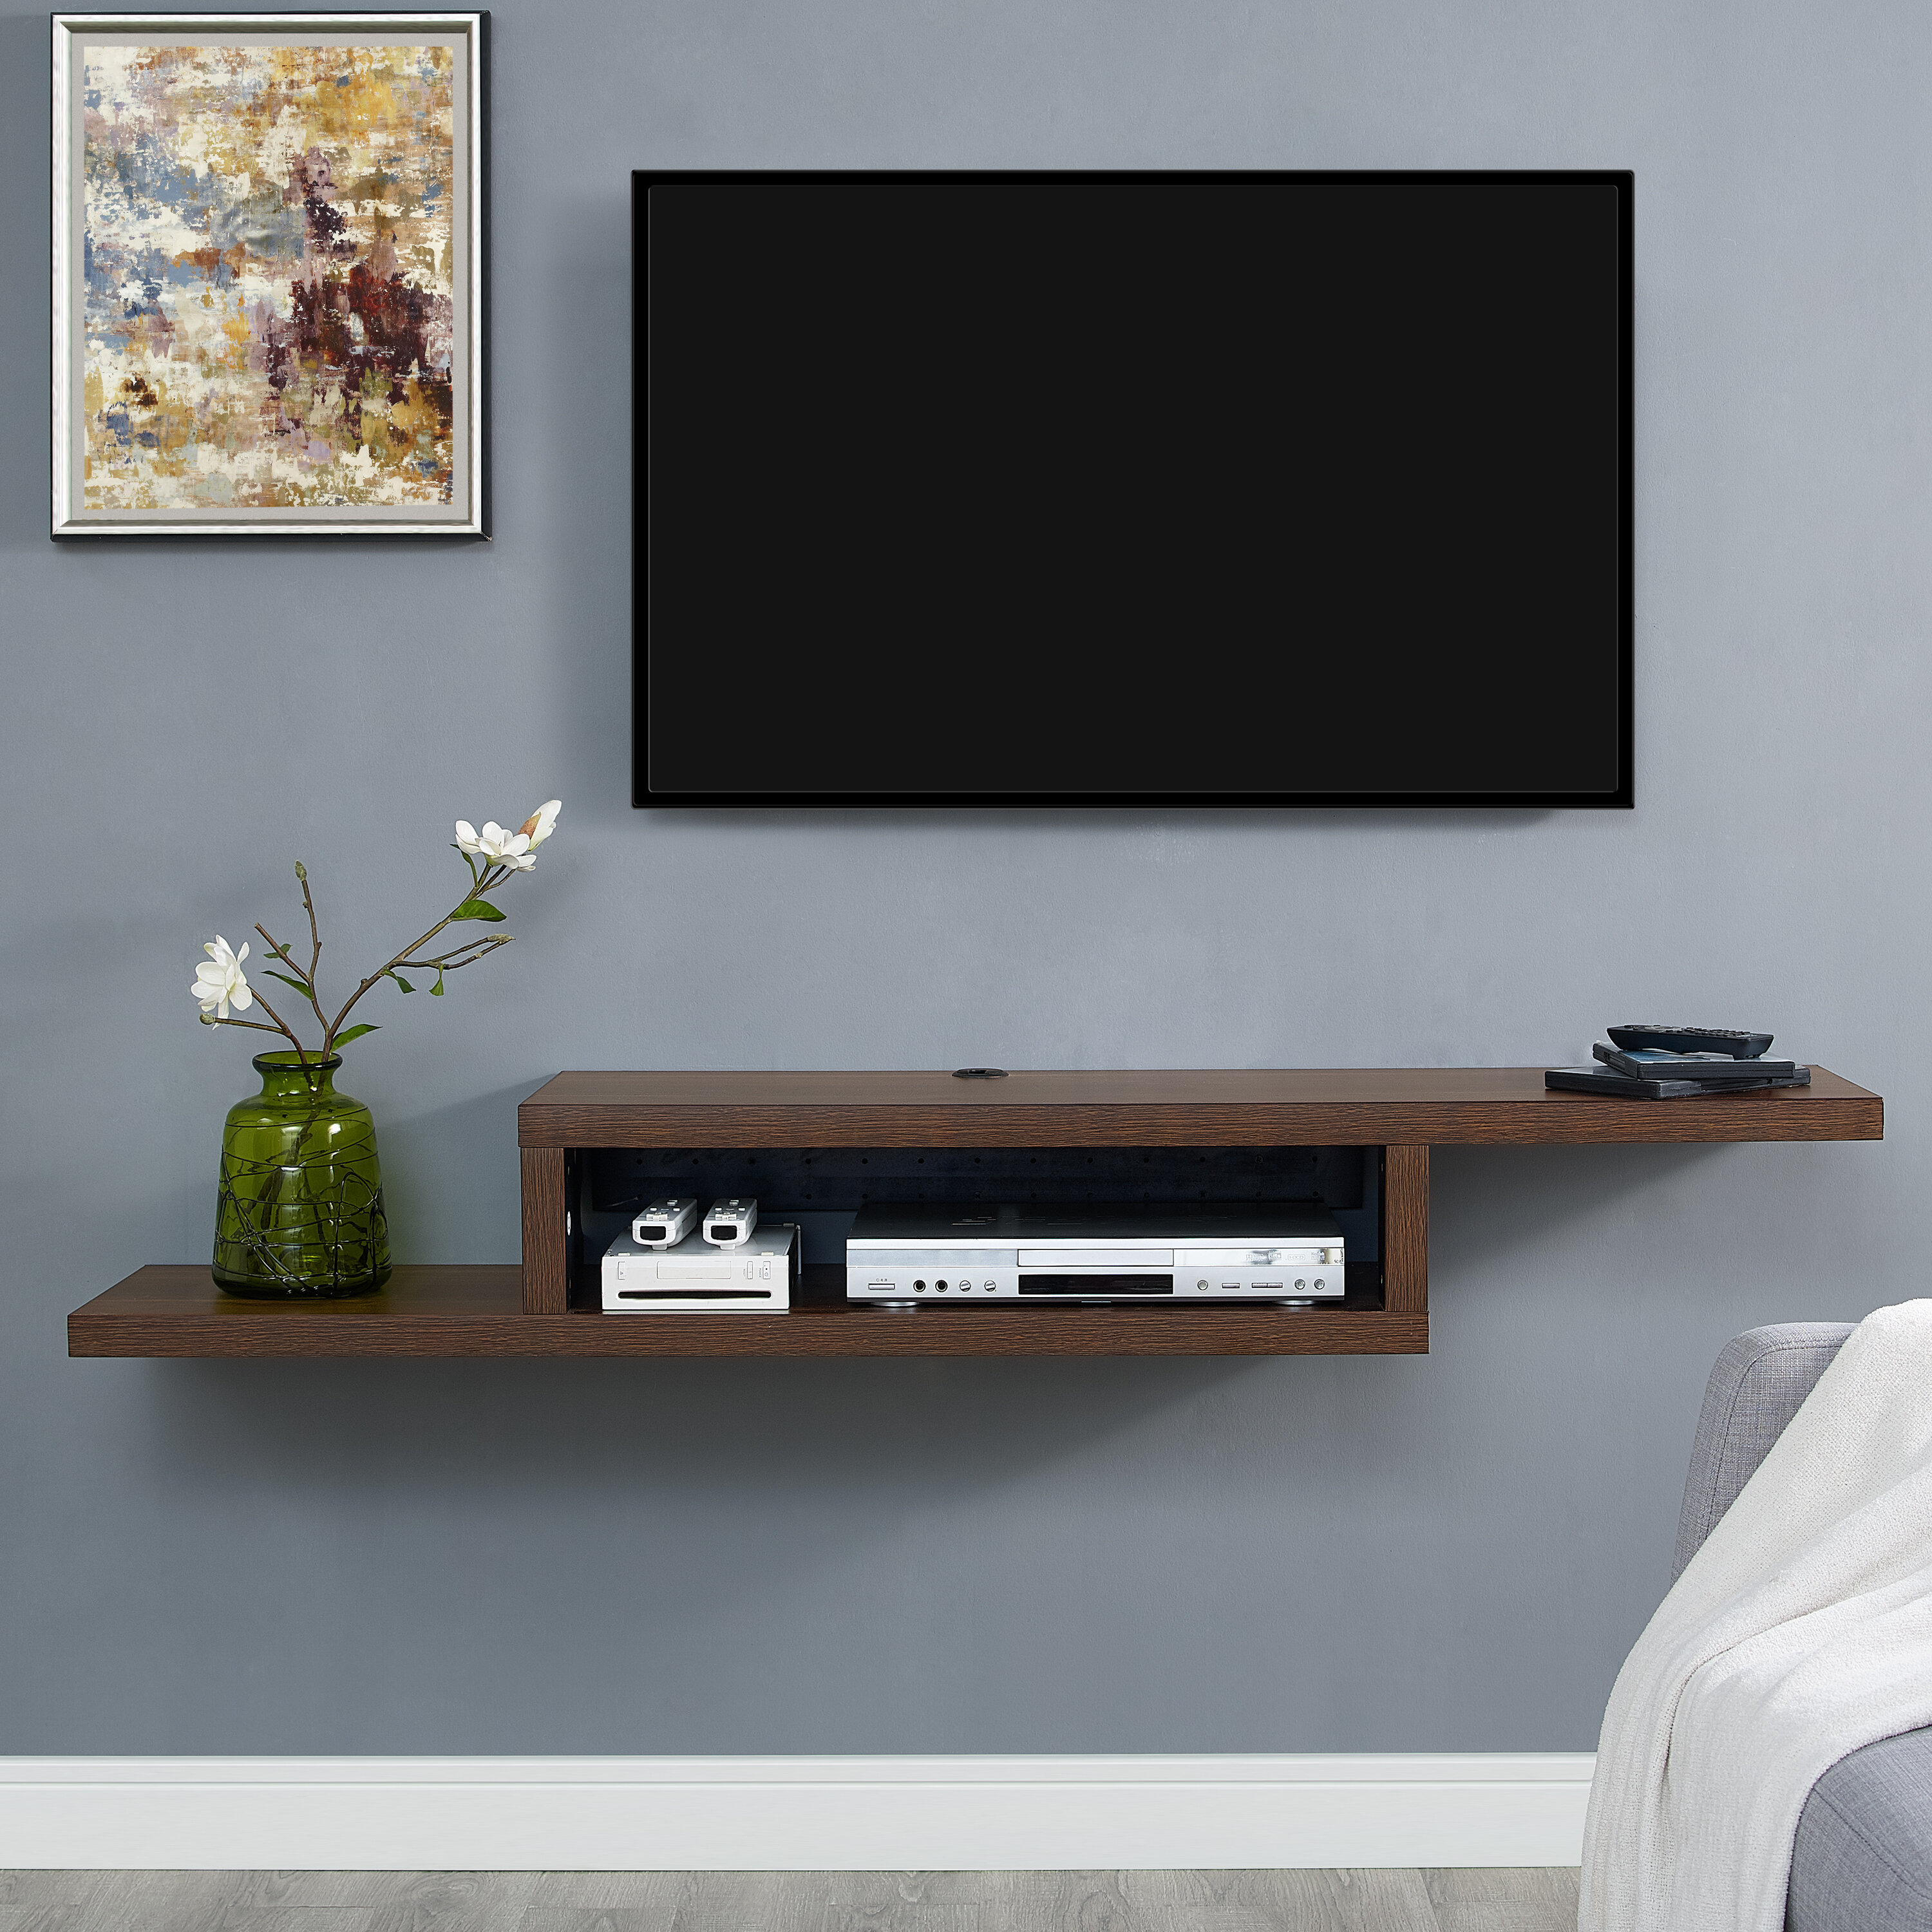 component tv ct of gallery img cheap sectional shelf with shelves wall installation mounted wallmounted on fairfield